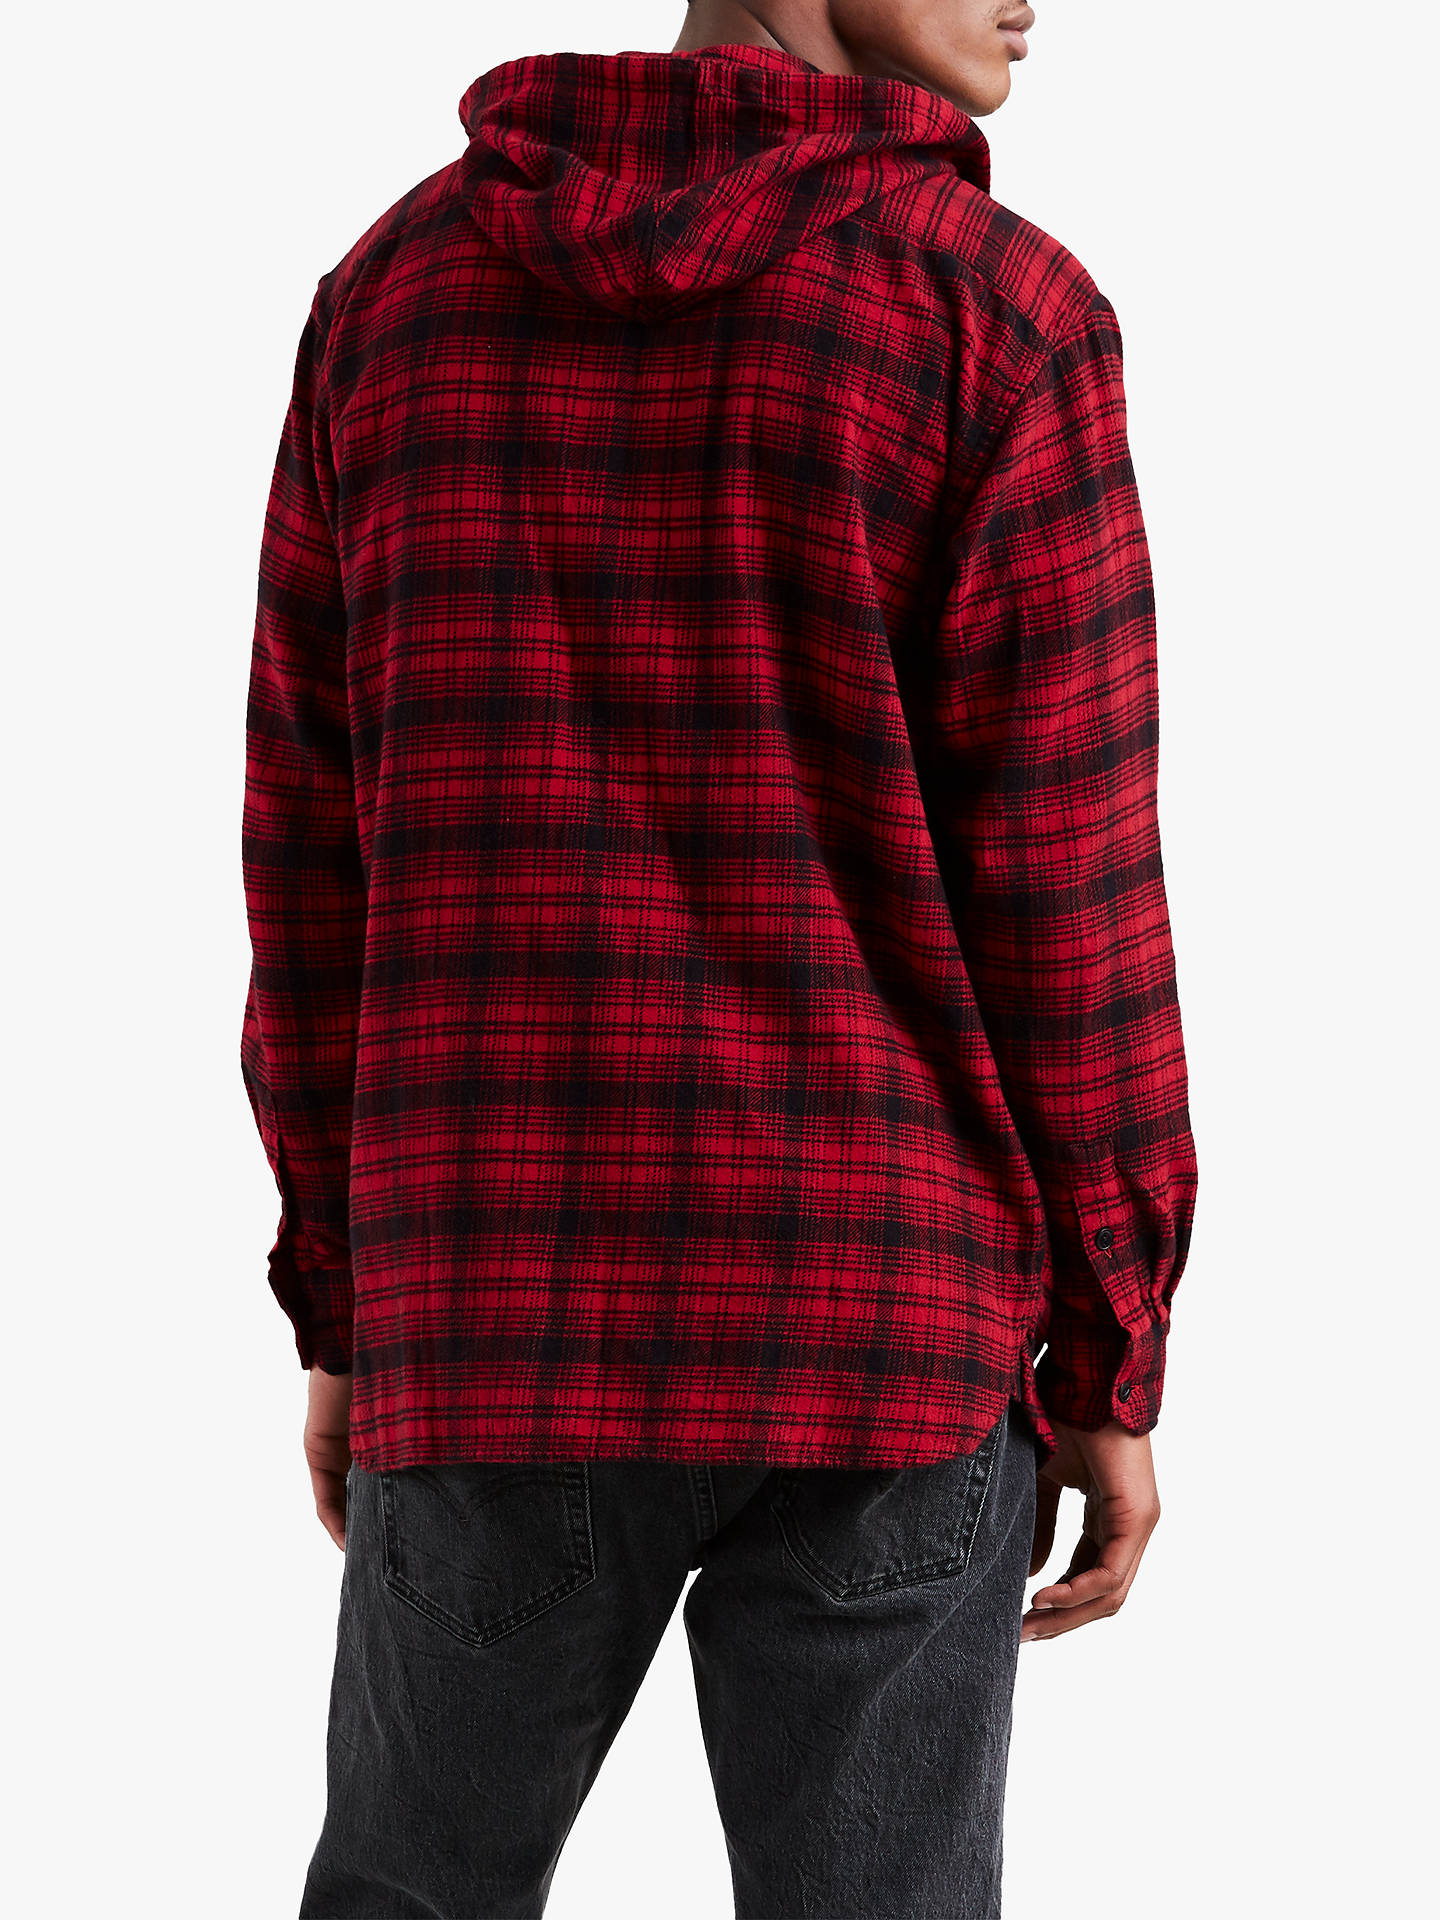 7cd7f2ca86dde0 ... Buy Levi s x Justin Timberlake Oversized Hooded Check Worker Shirt